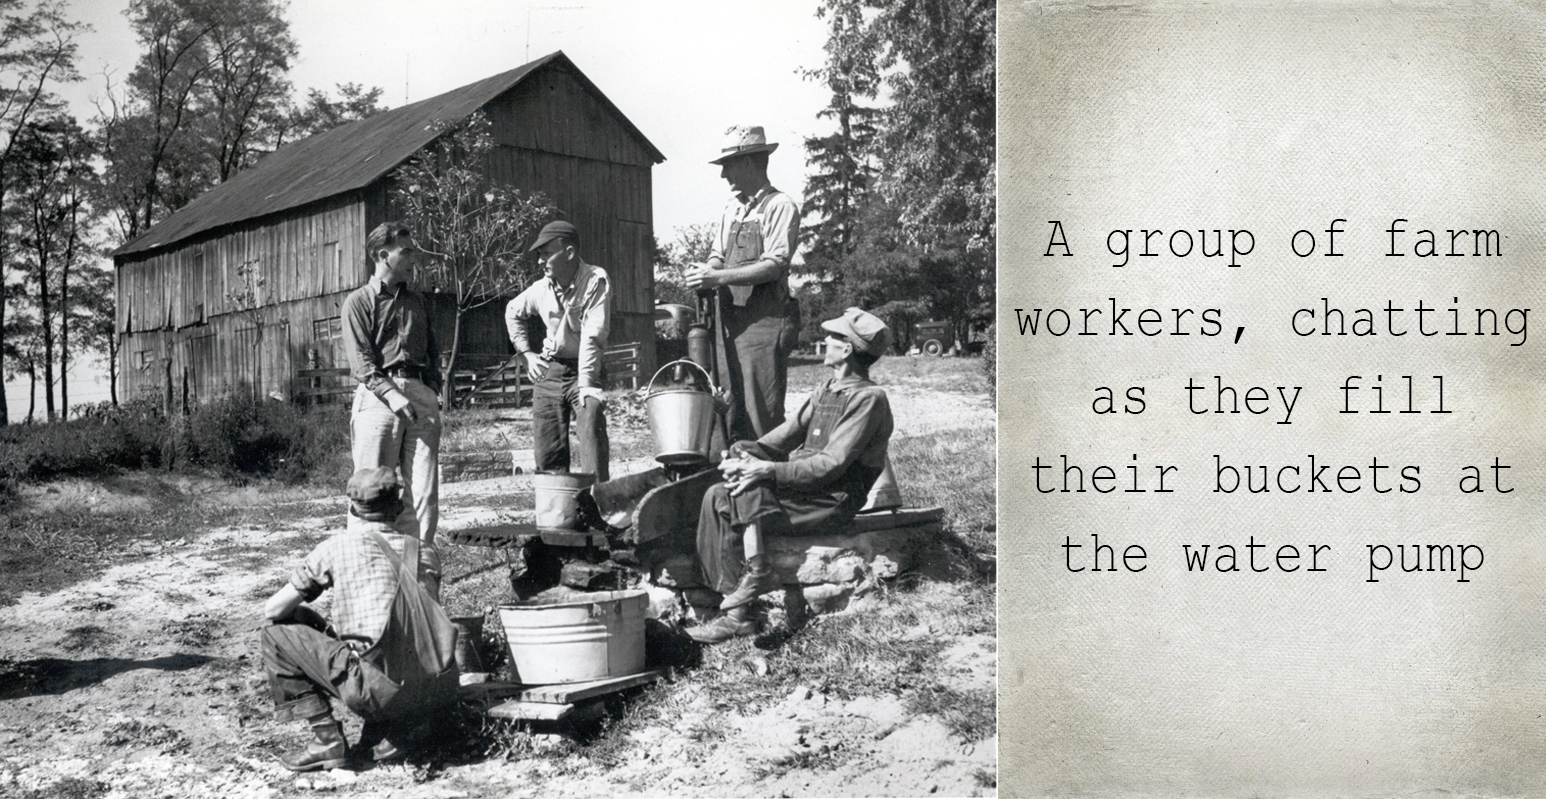 Farm workers with buckets